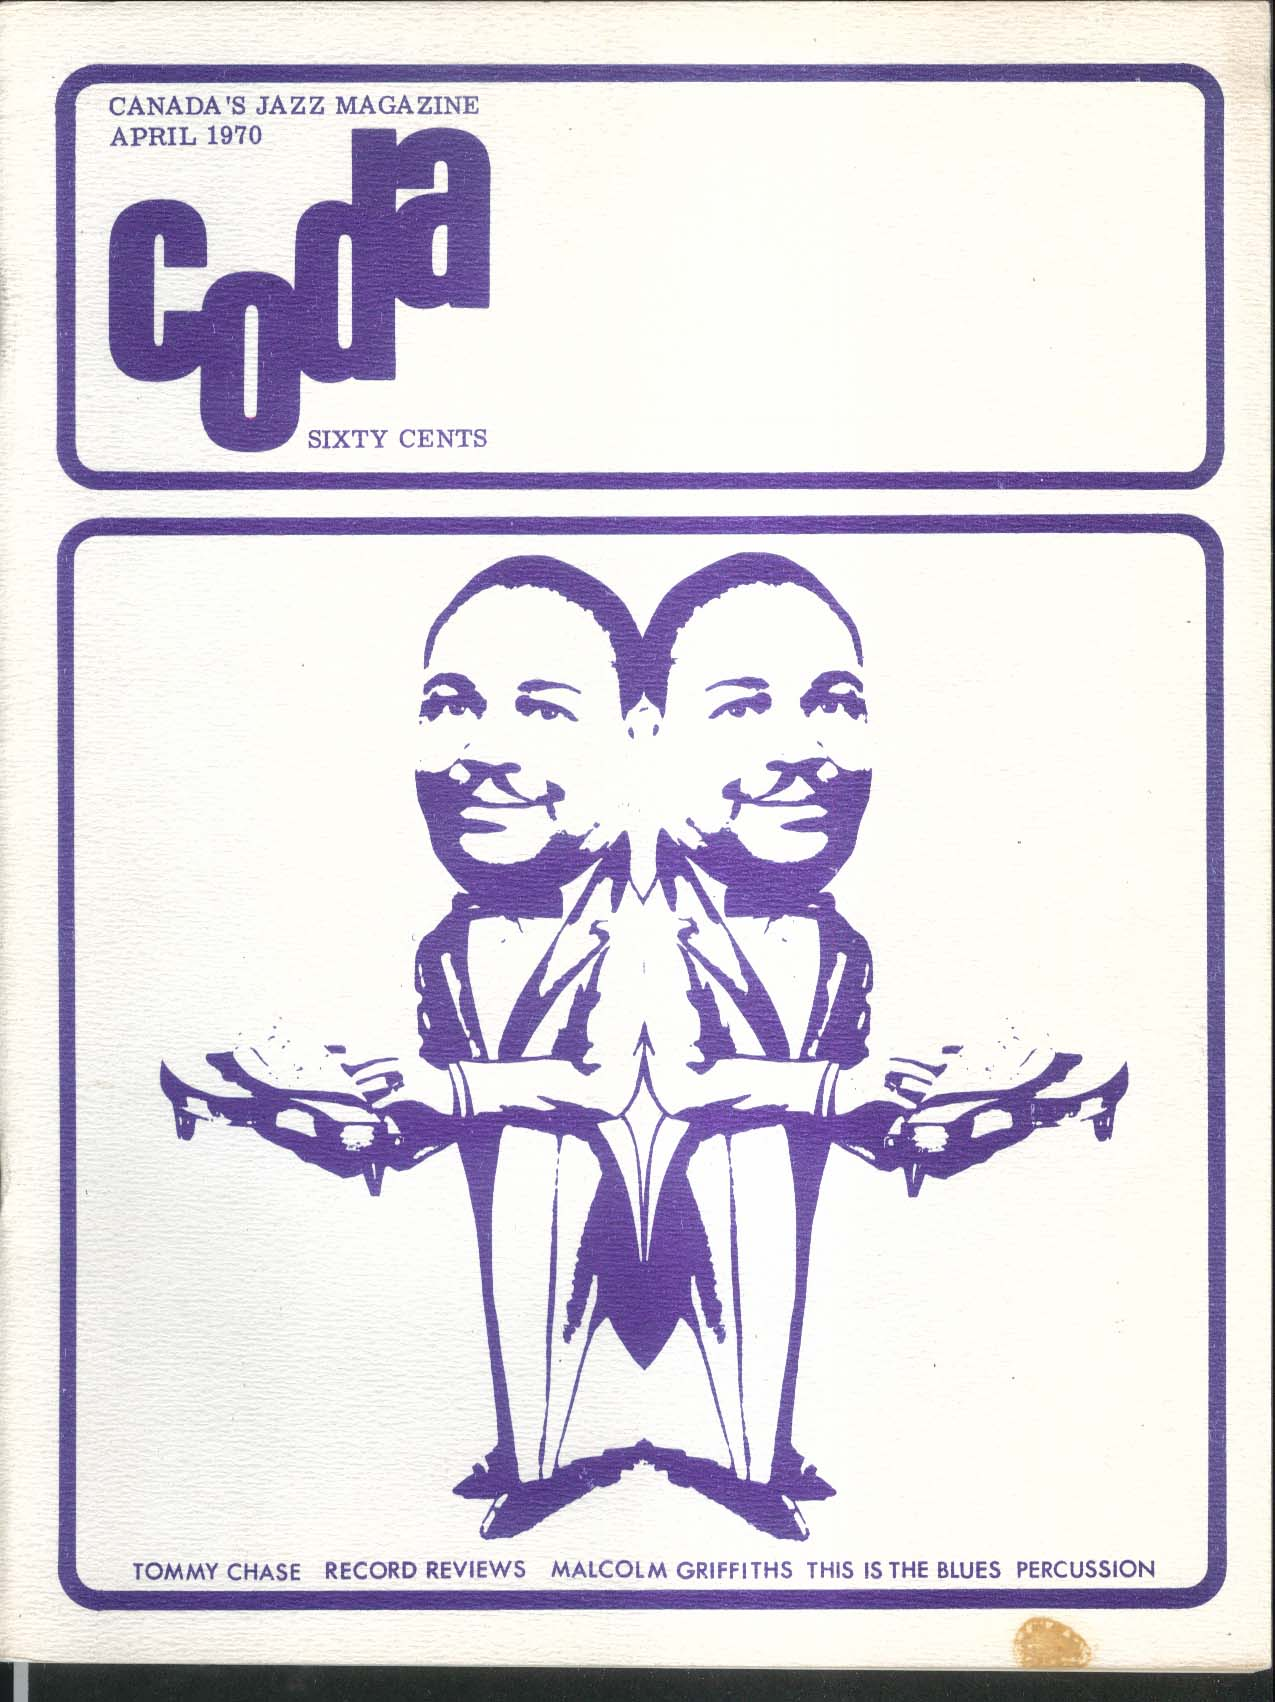 CODA Tommy Chase Malcolm Griffiths 4 1970